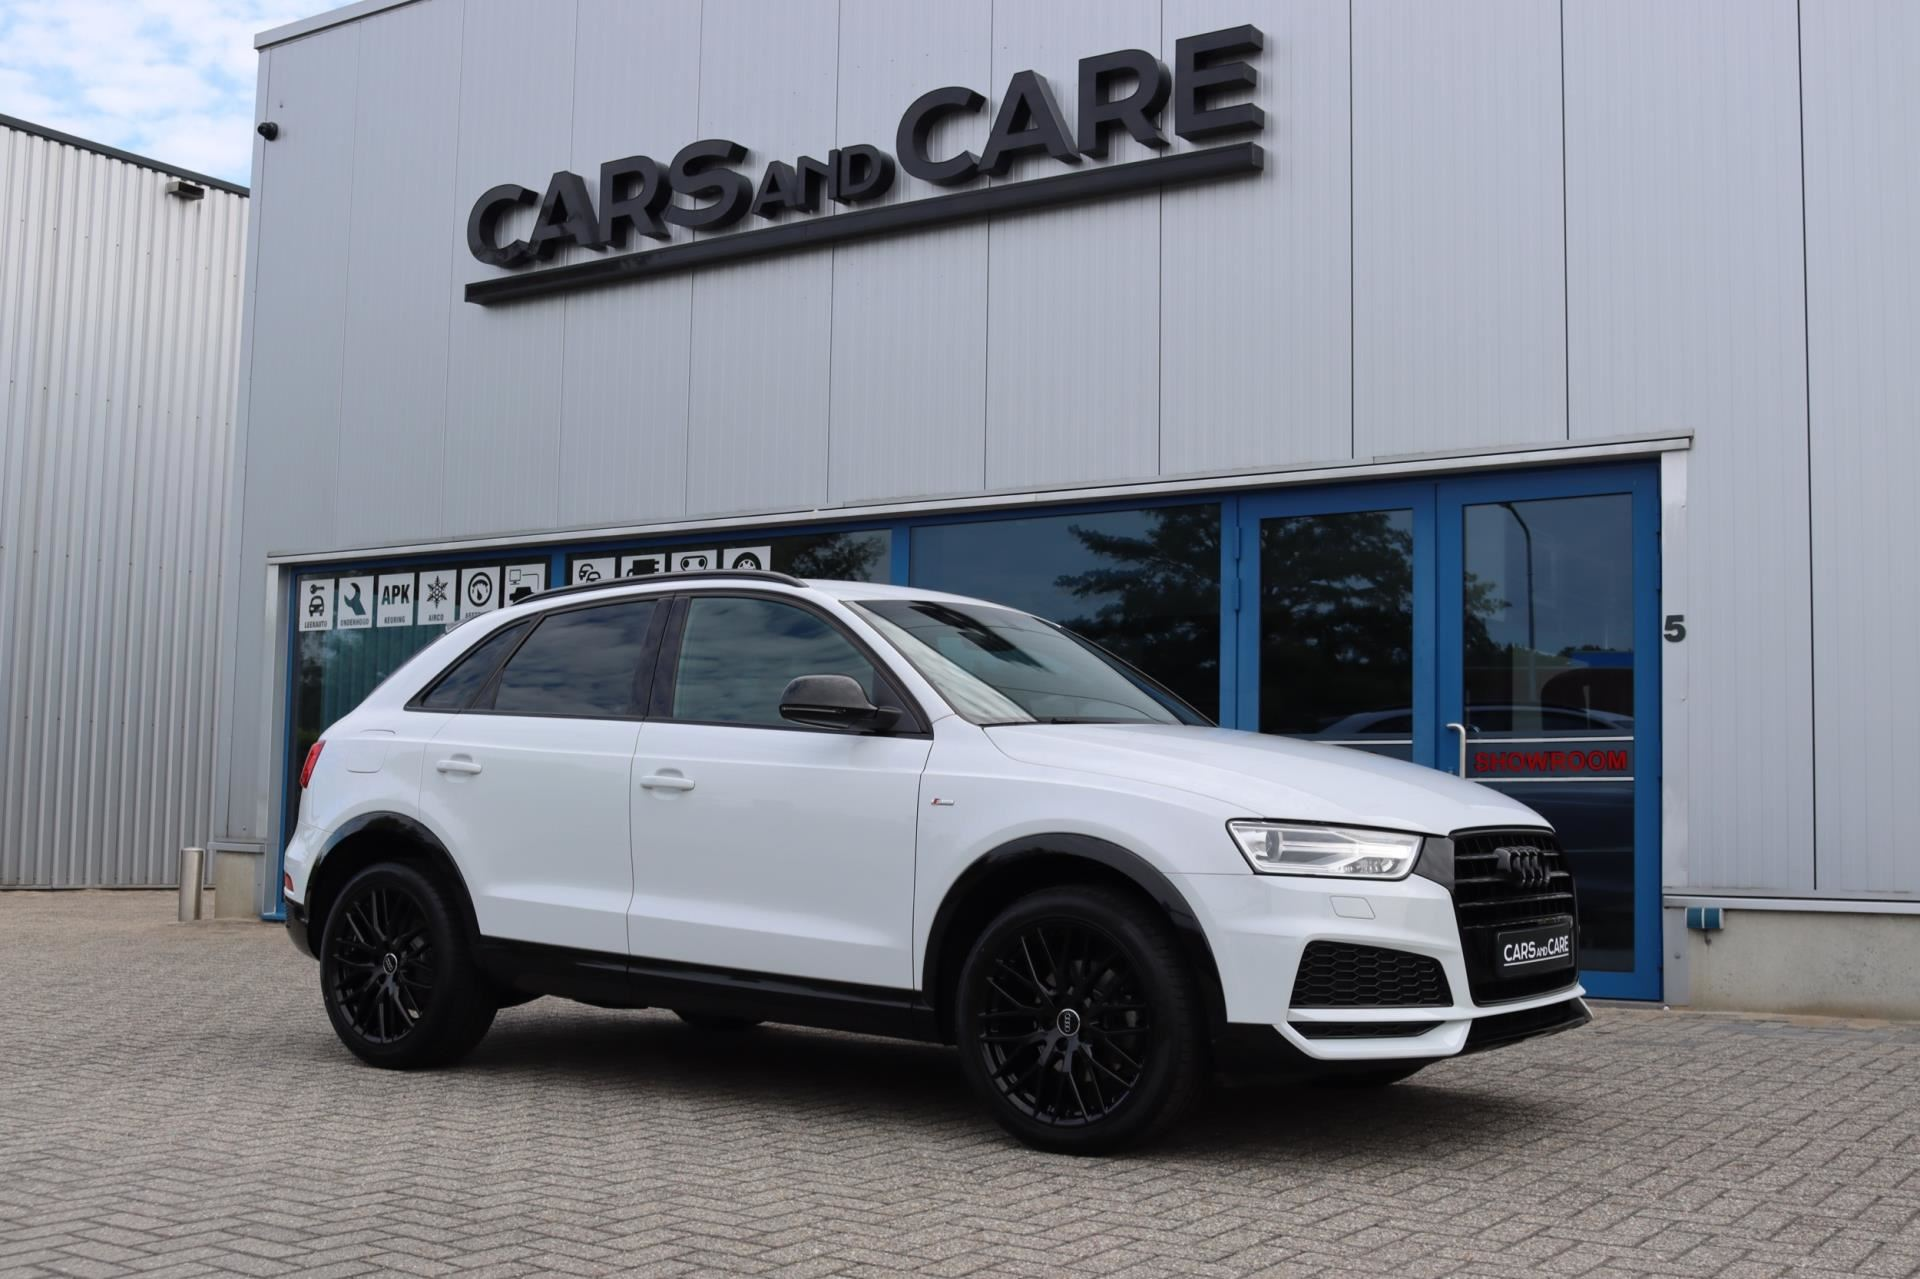 Audi Q3 occasion - Cars And Care Goeree-Overflakkee